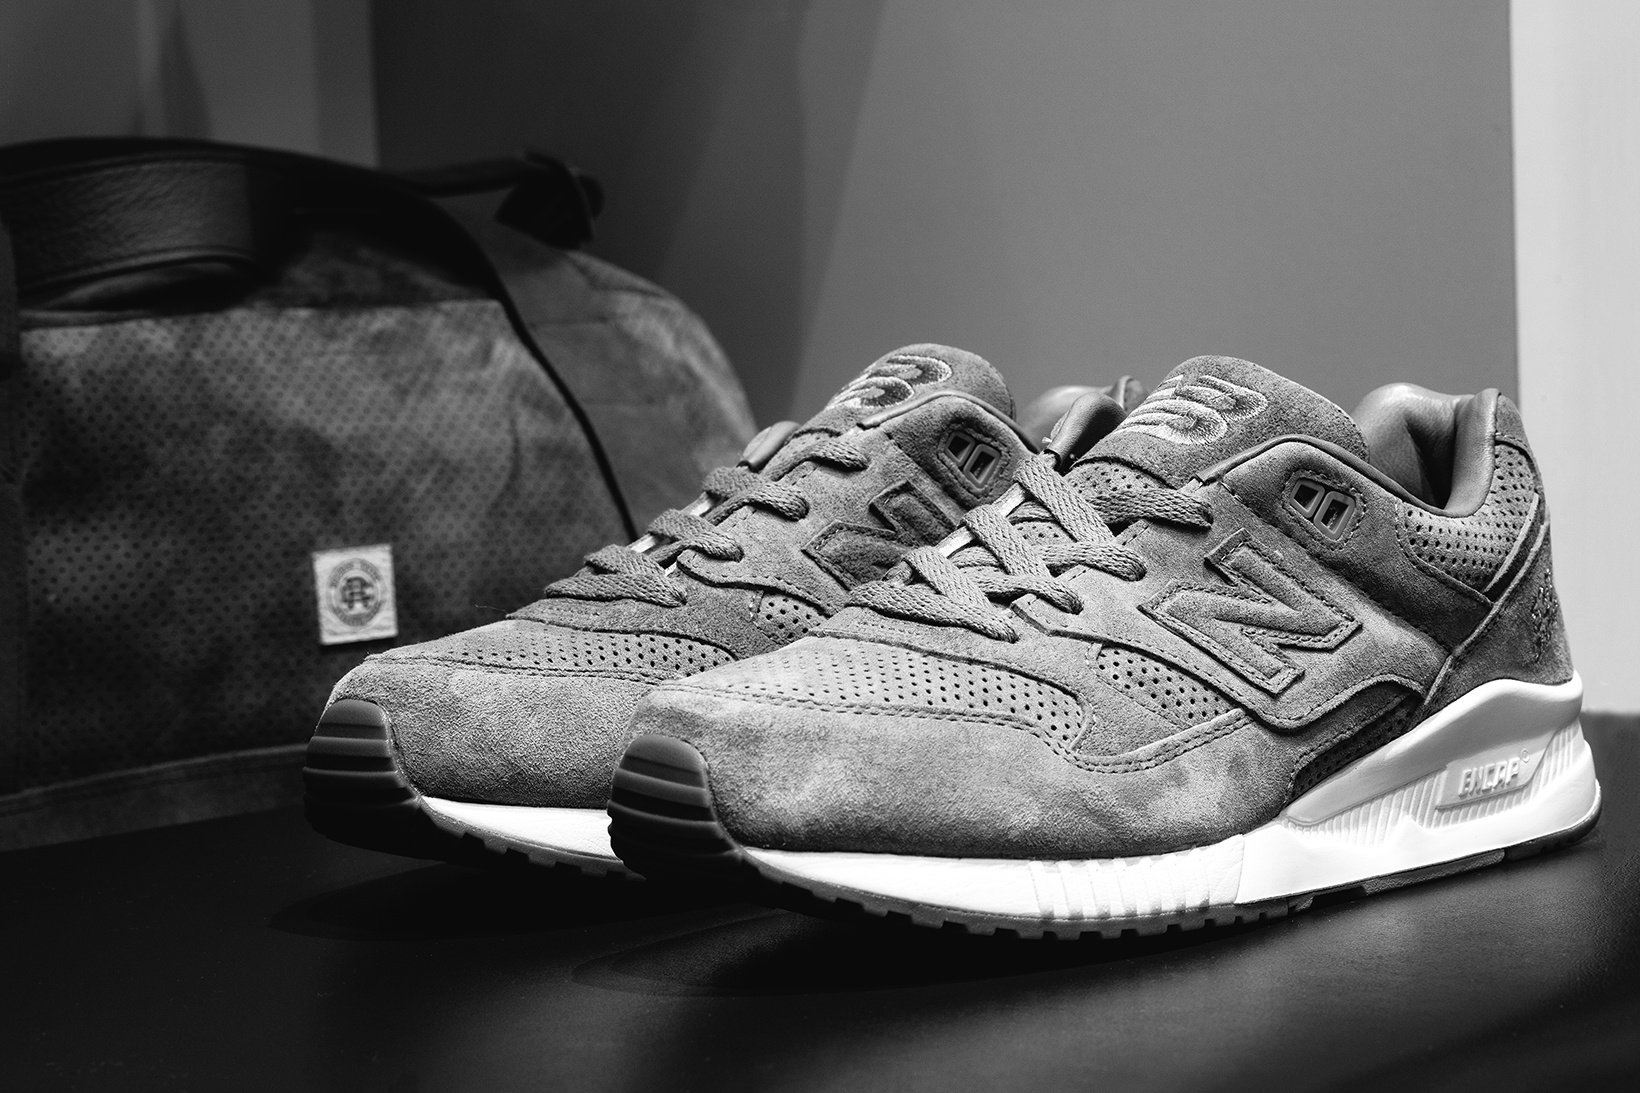 http://shoesbrend.ru/images/upload/new-balance-530-2.jpg